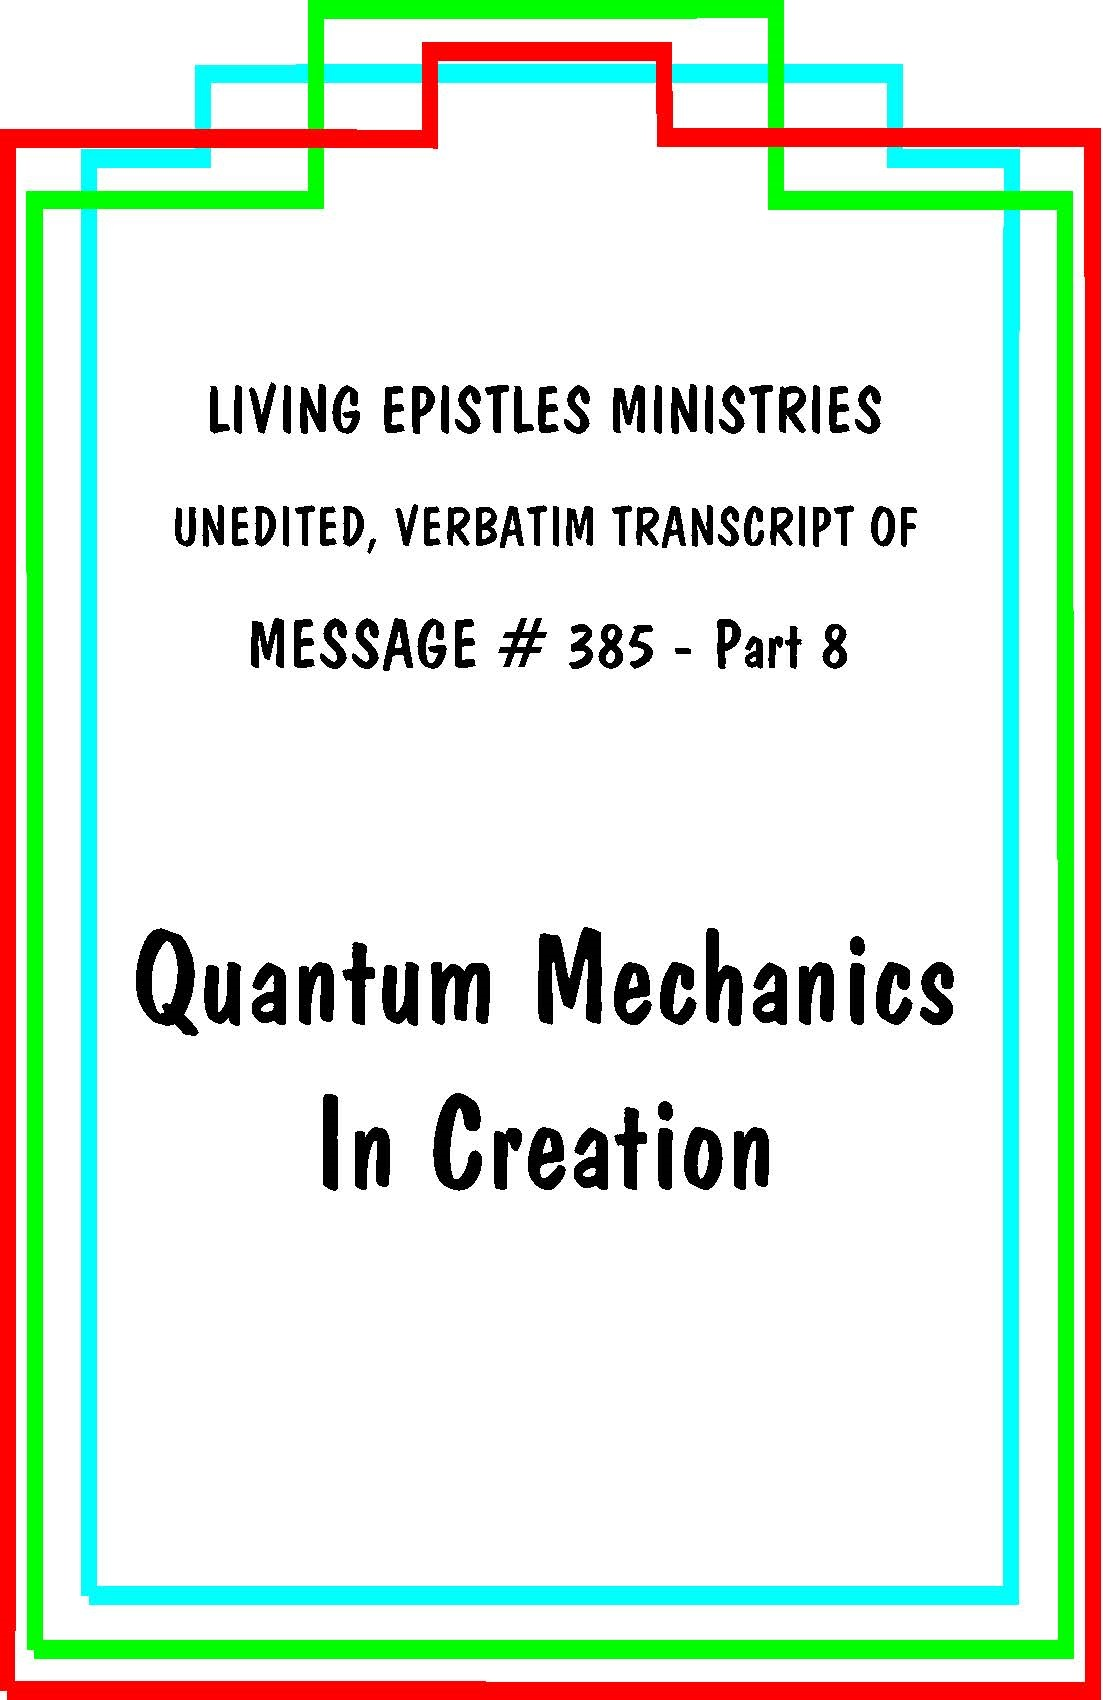 QuantumMechanicsInCreation.LEM.385.08.Cover.040616.72dpi